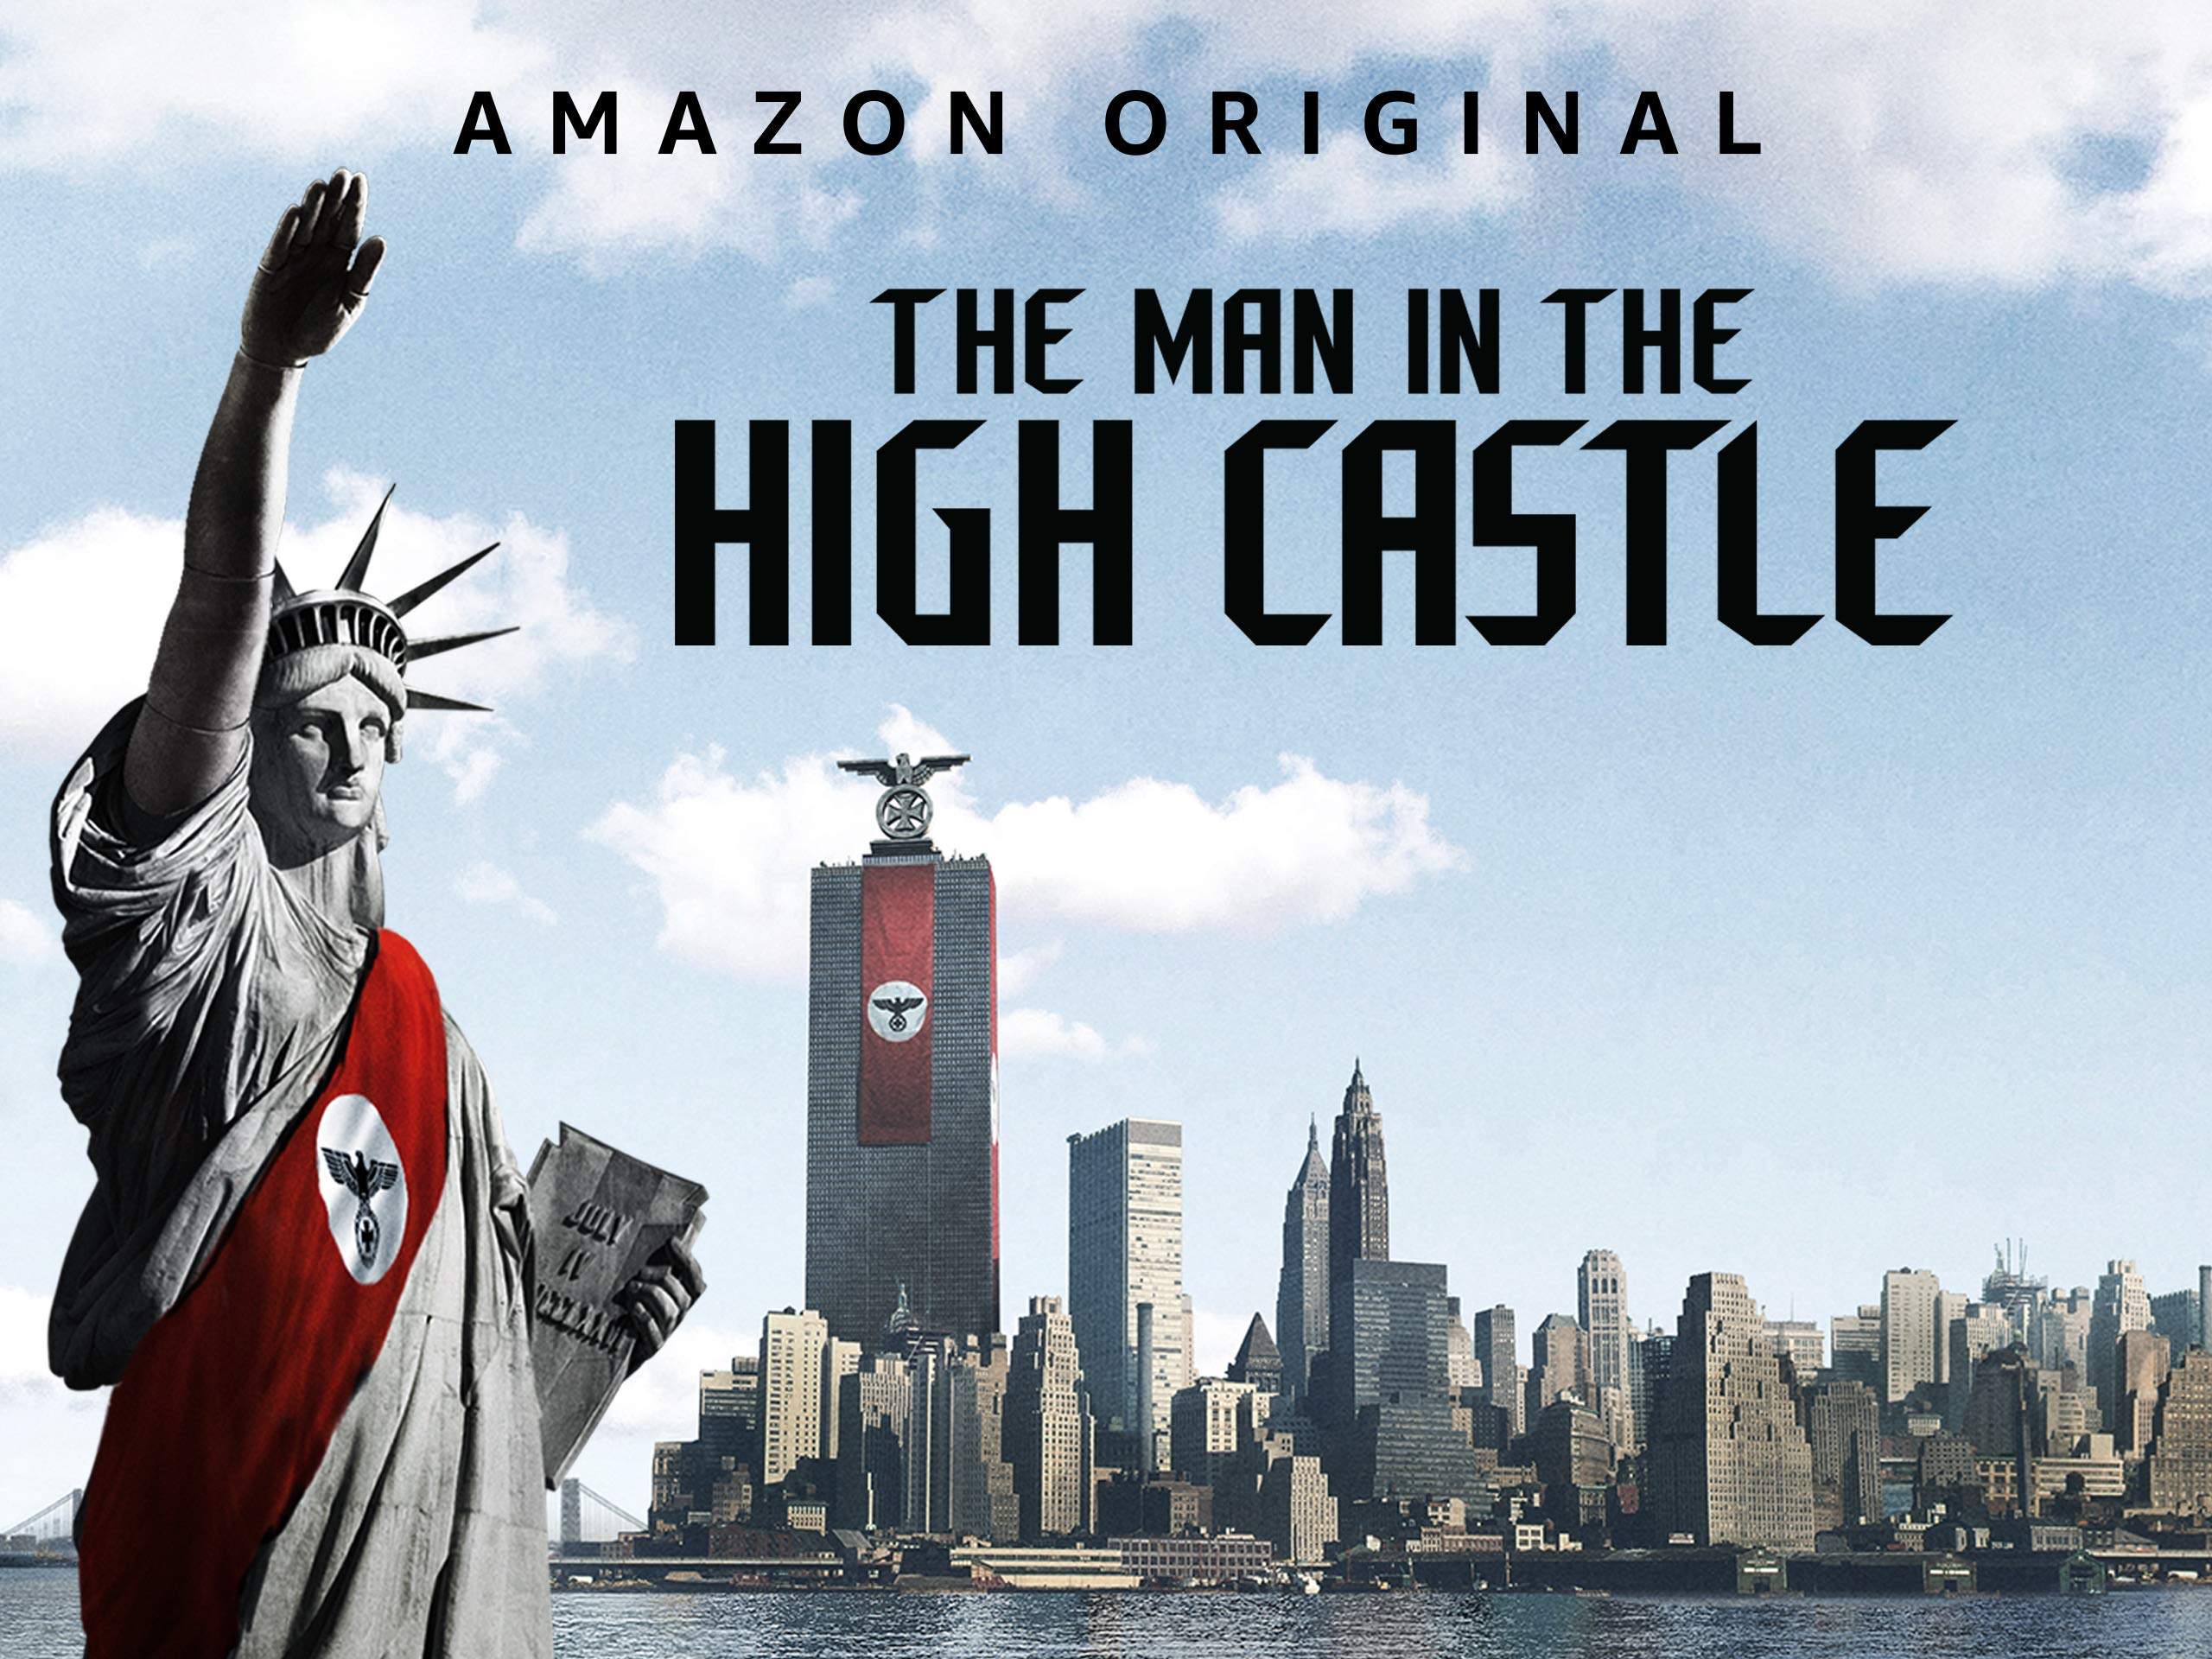 Amazon.com: Watch The Man In the High Castle - Season 1 | Prime Video